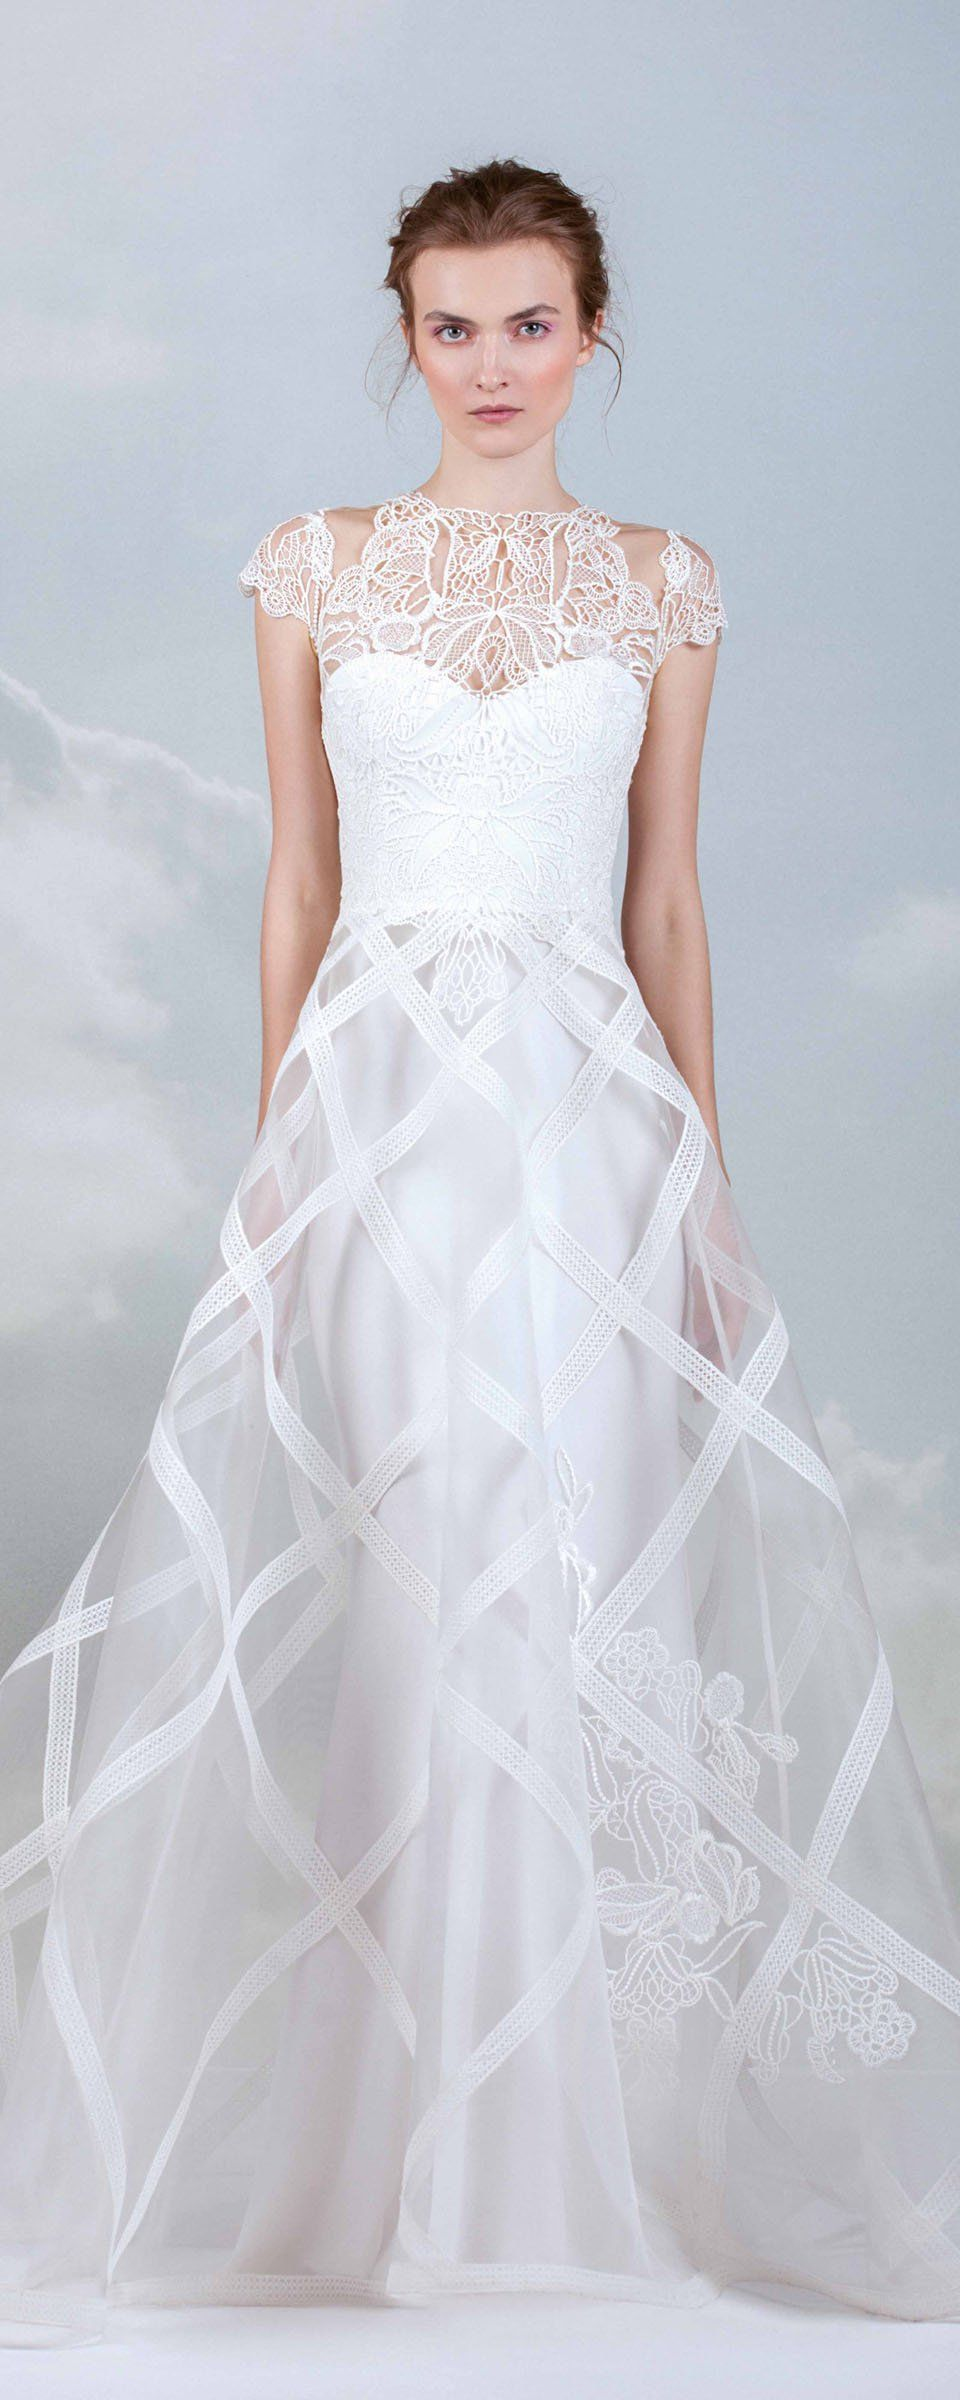 Gemy maalouf collection bridal womenus fashion pinterest